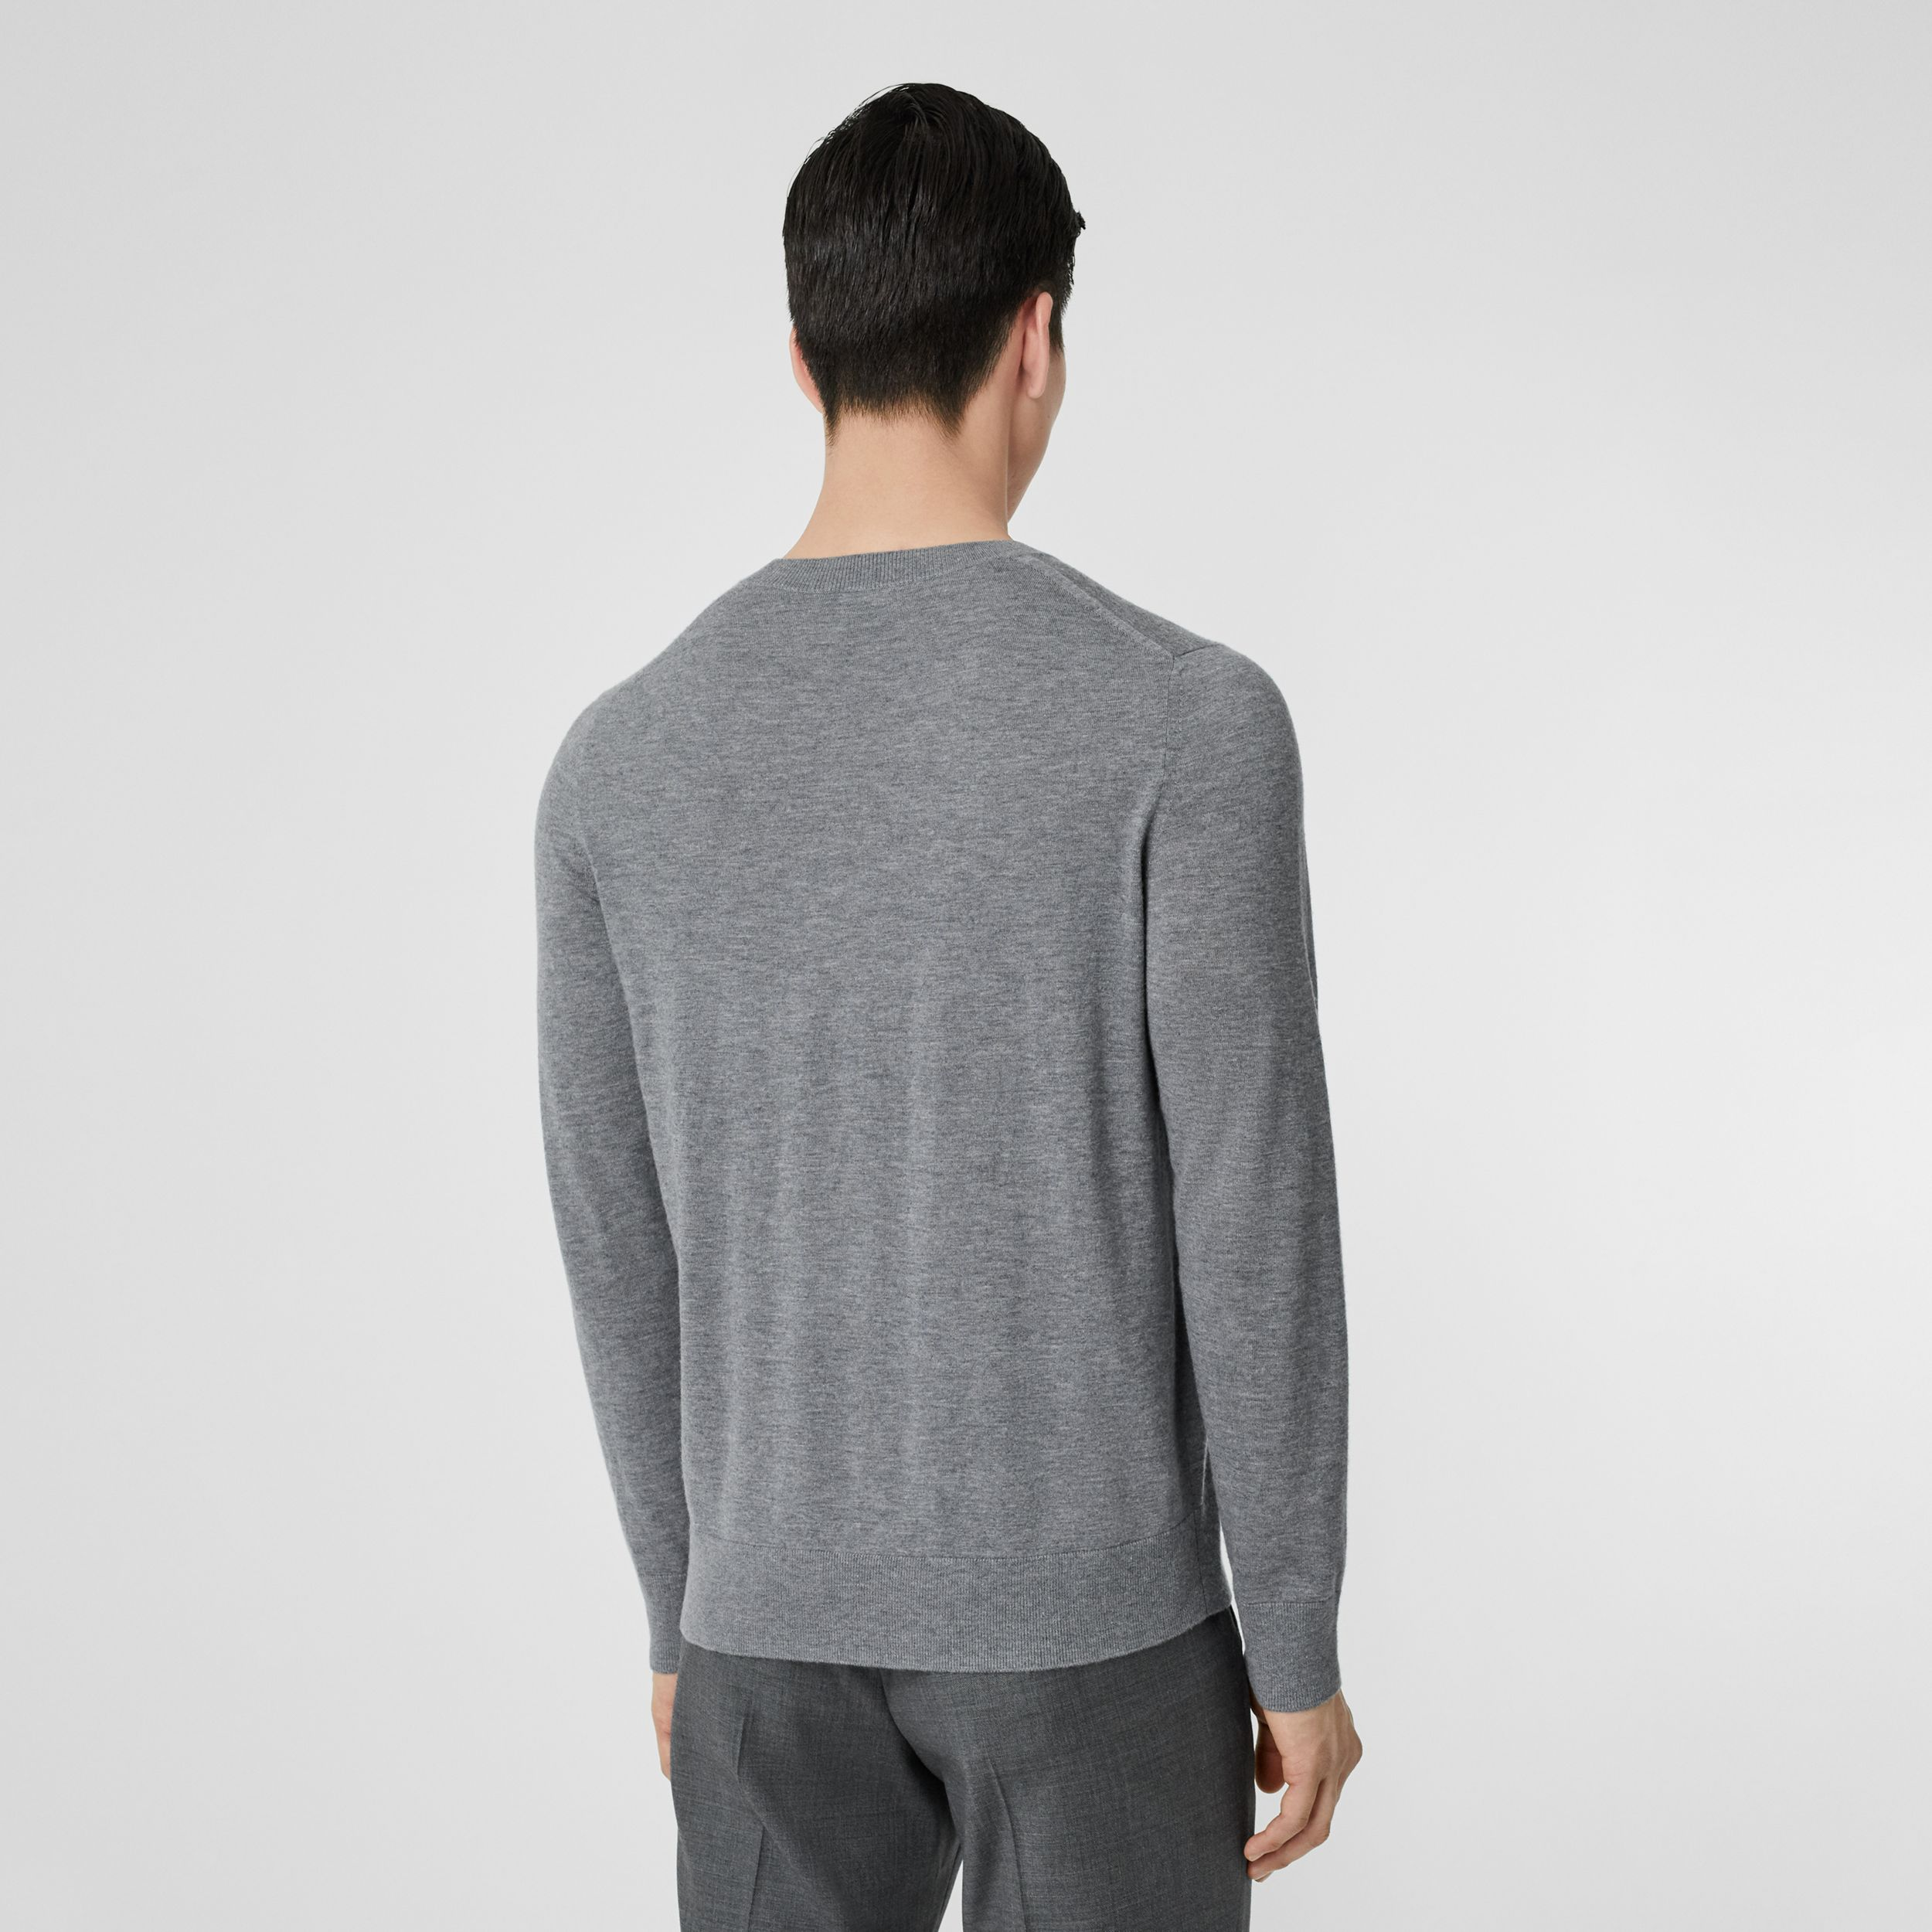 Monogram Motif Cashmere Sweater in Pale Grey Melange - Men | Burberry - 3